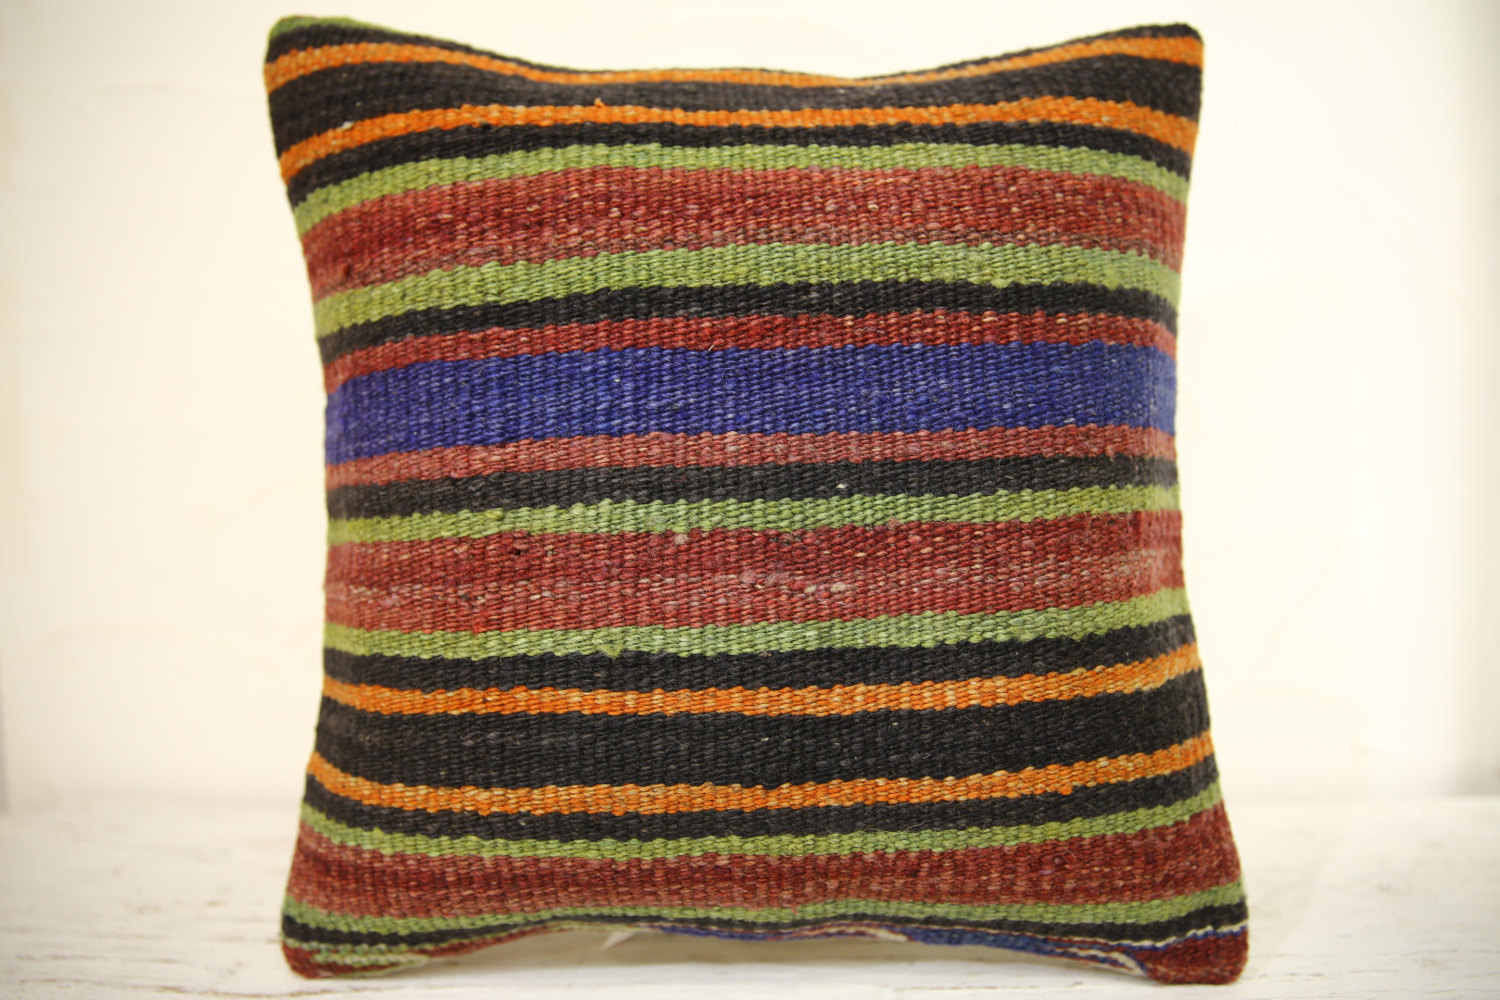 Kilim Pillows | 16x16 | Turkish pillows | 1357 | Accent Pillow,Decorative Pillow